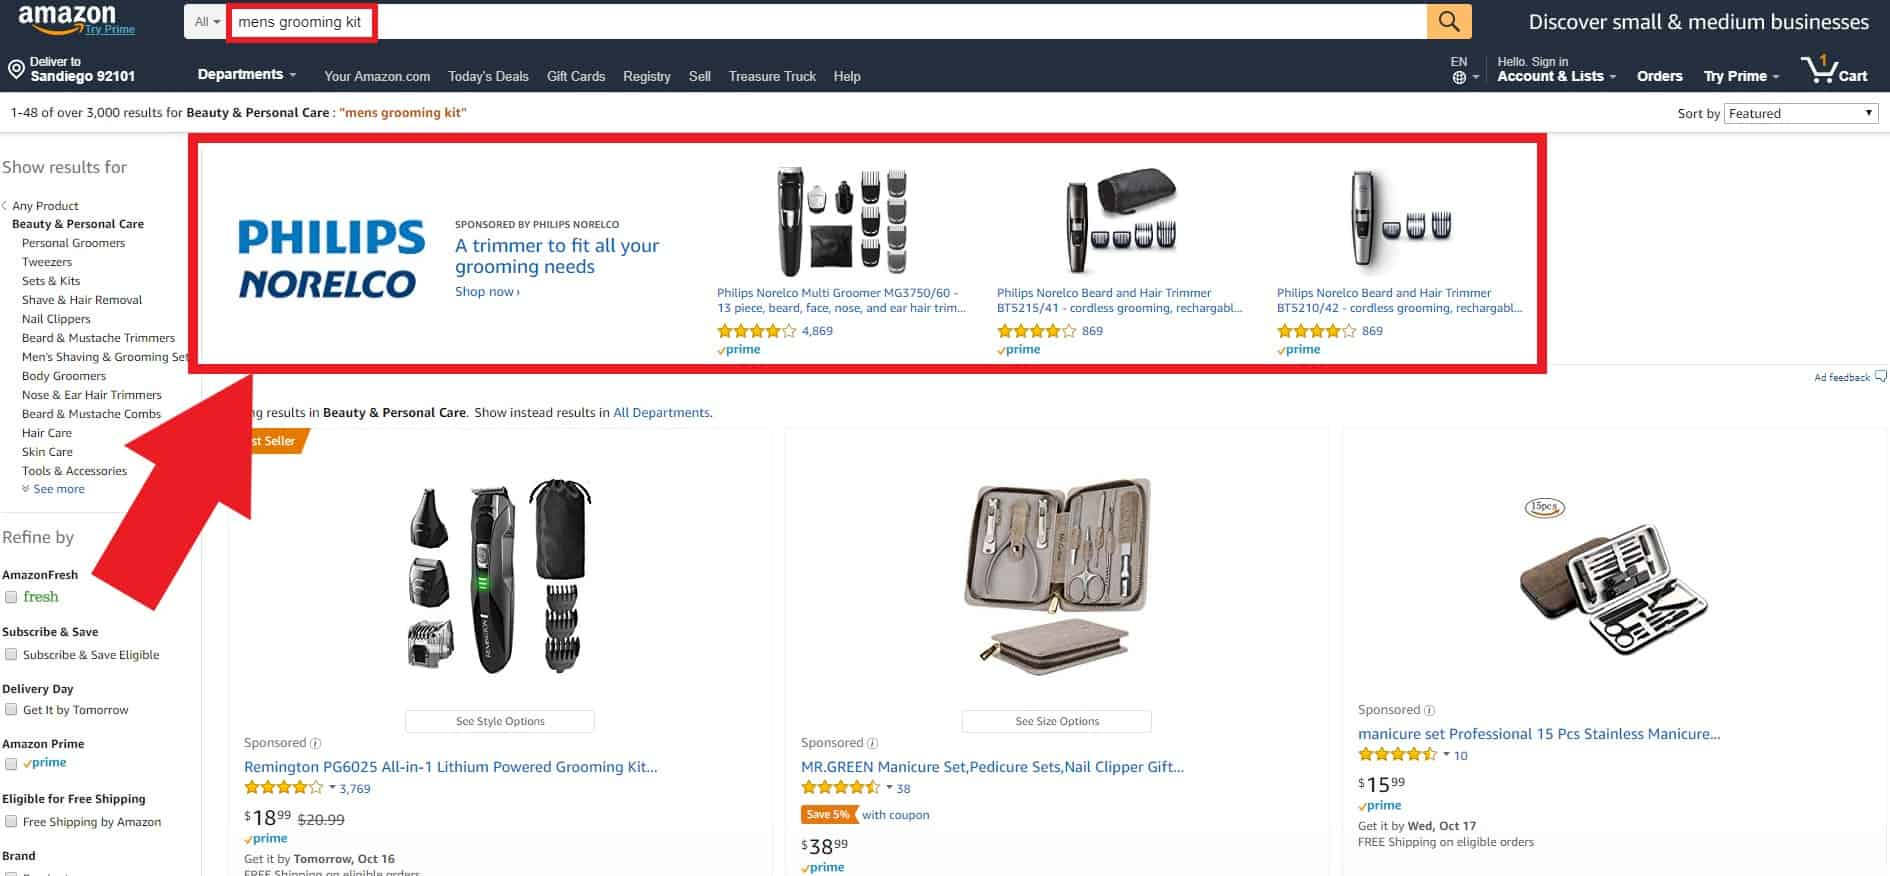 an example of a sponsored brands ad on an amazon search results page